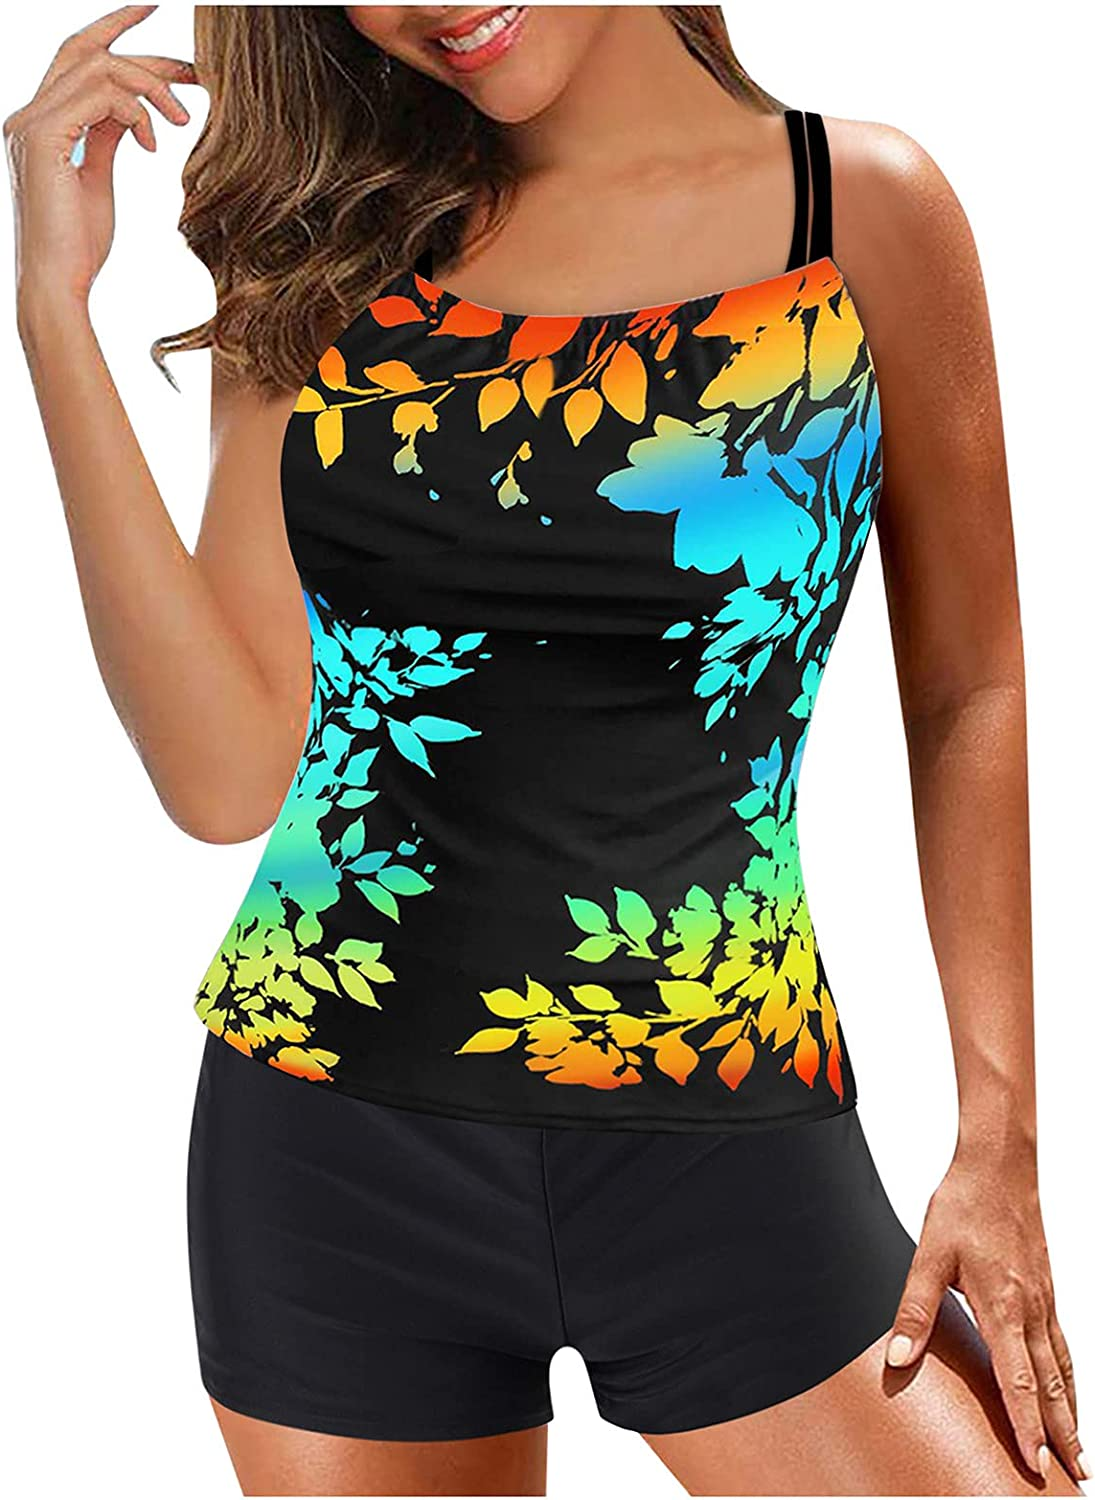 CCOOfhhc Women 2 Piece Sunflower Tank Printed Top Boyshorts with Max 83% OFF Fort Worth Mall